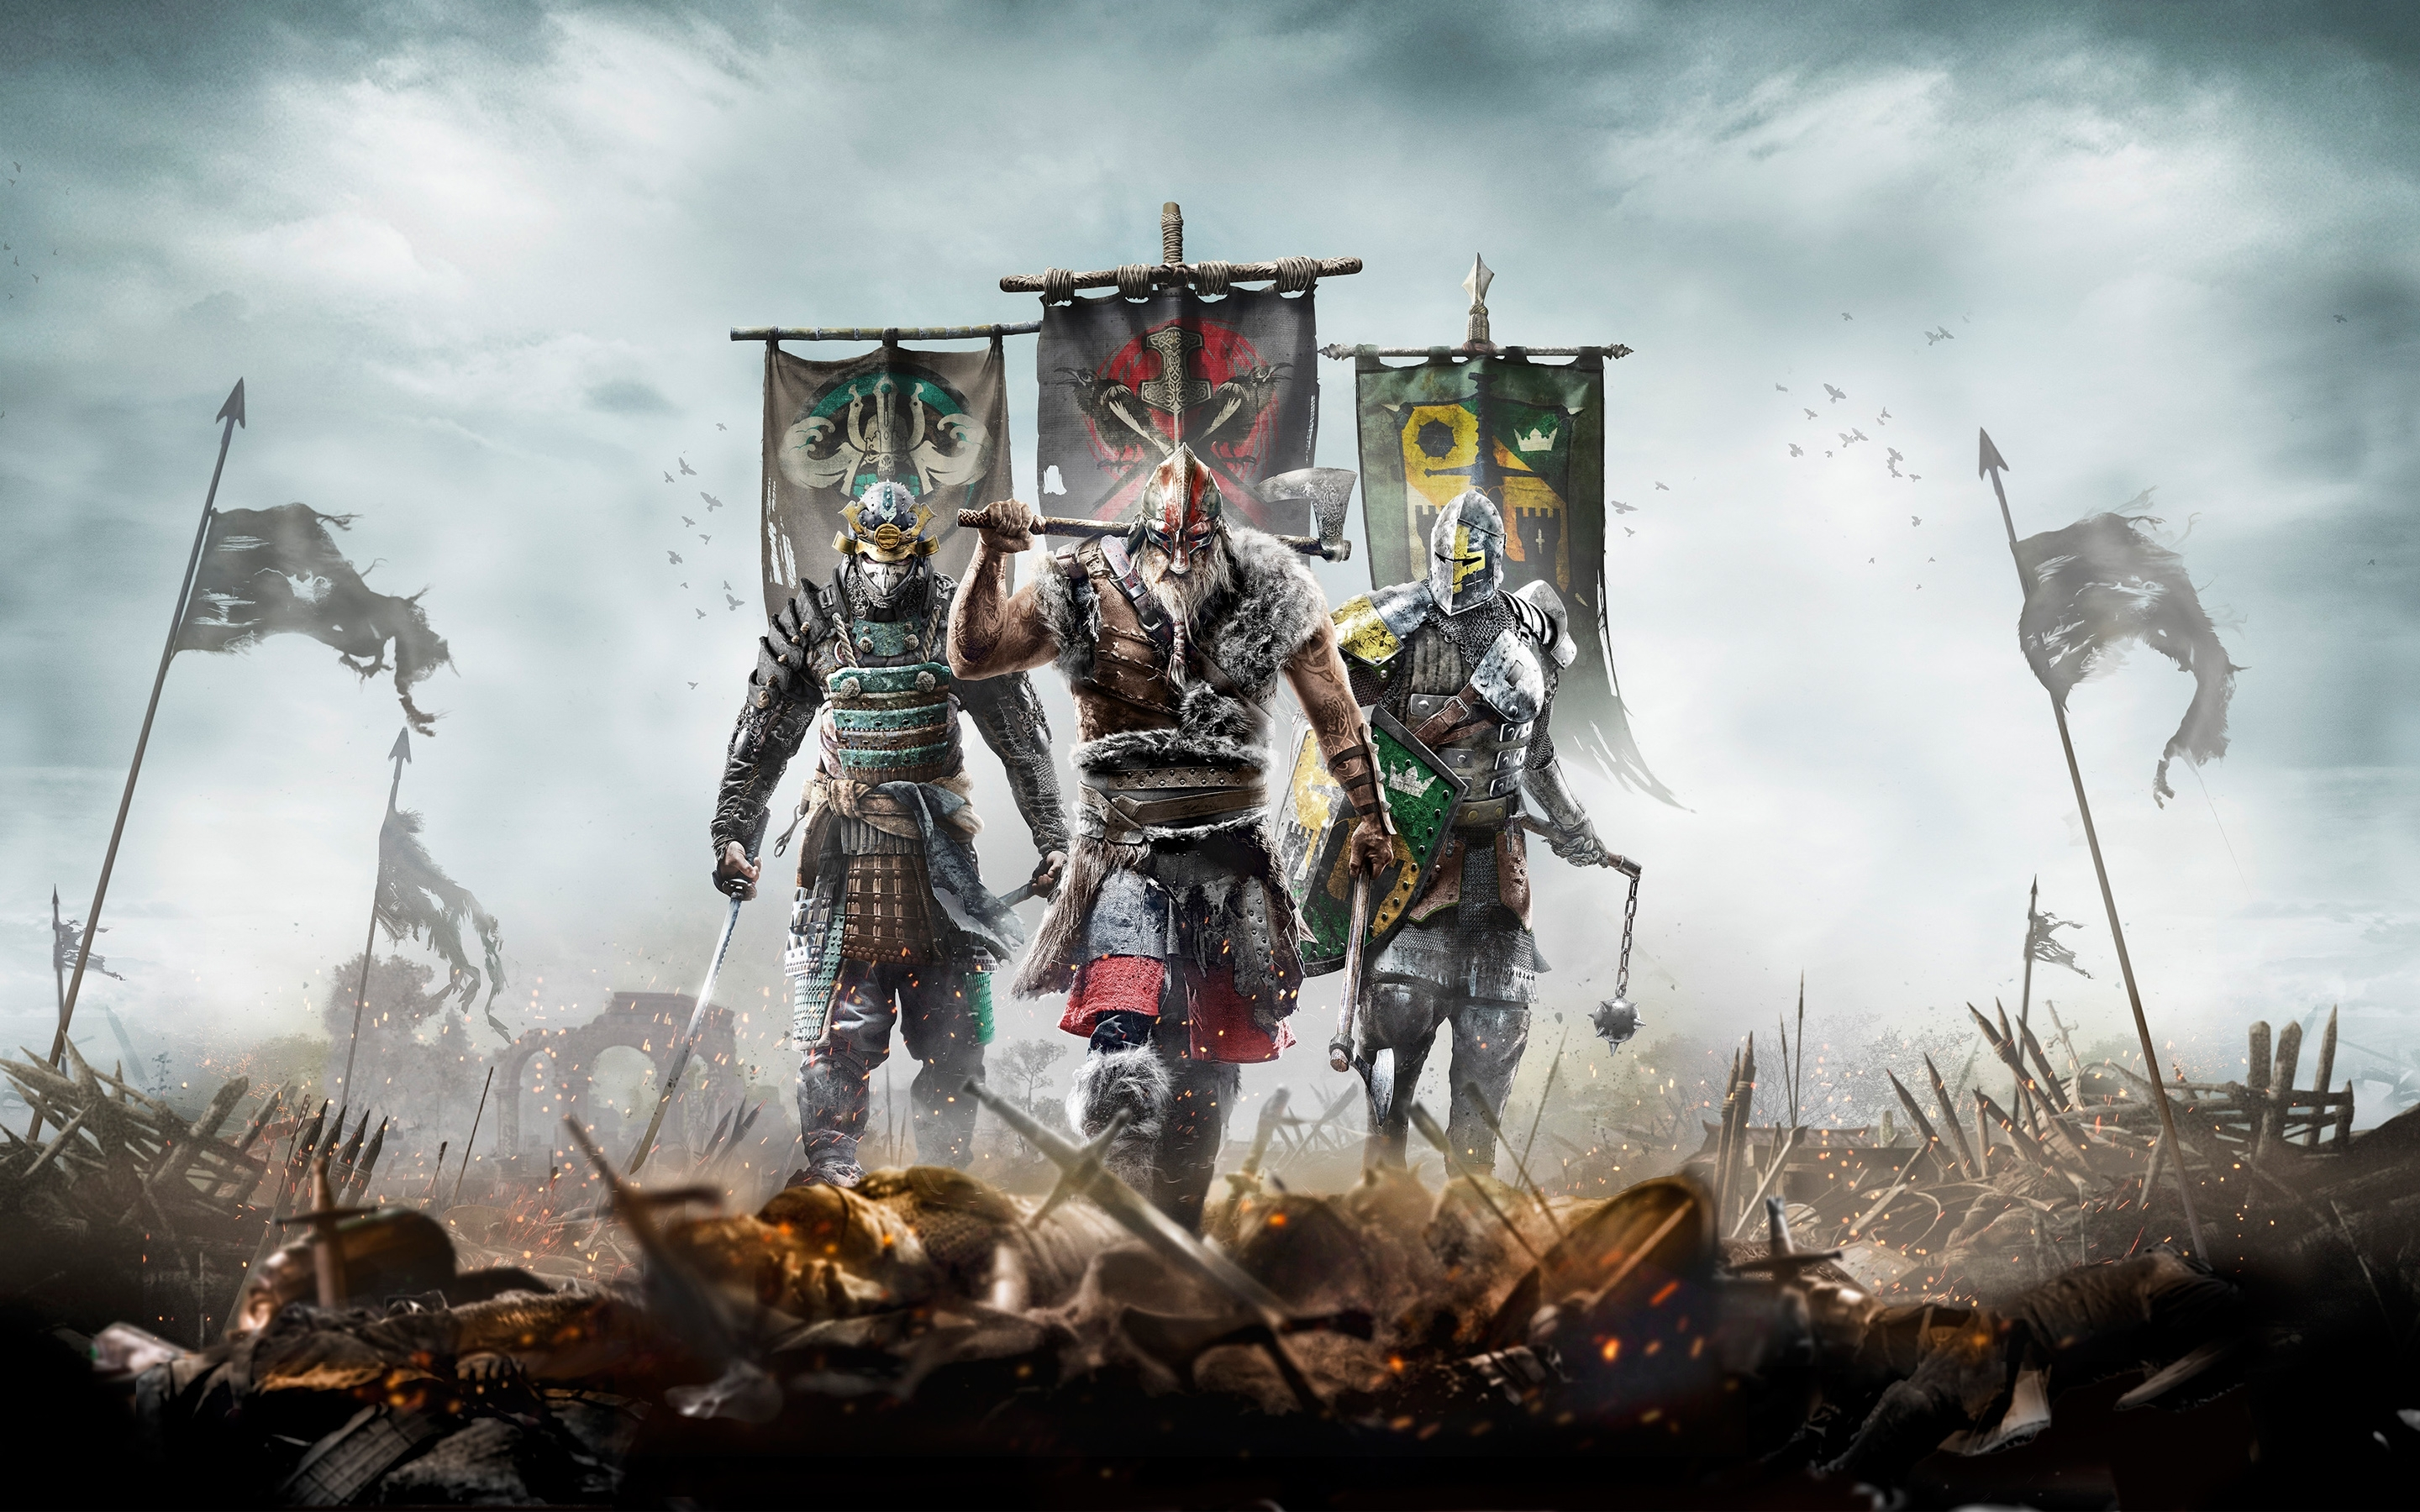 for honor 2016 game wallpapers | wallpapers hd